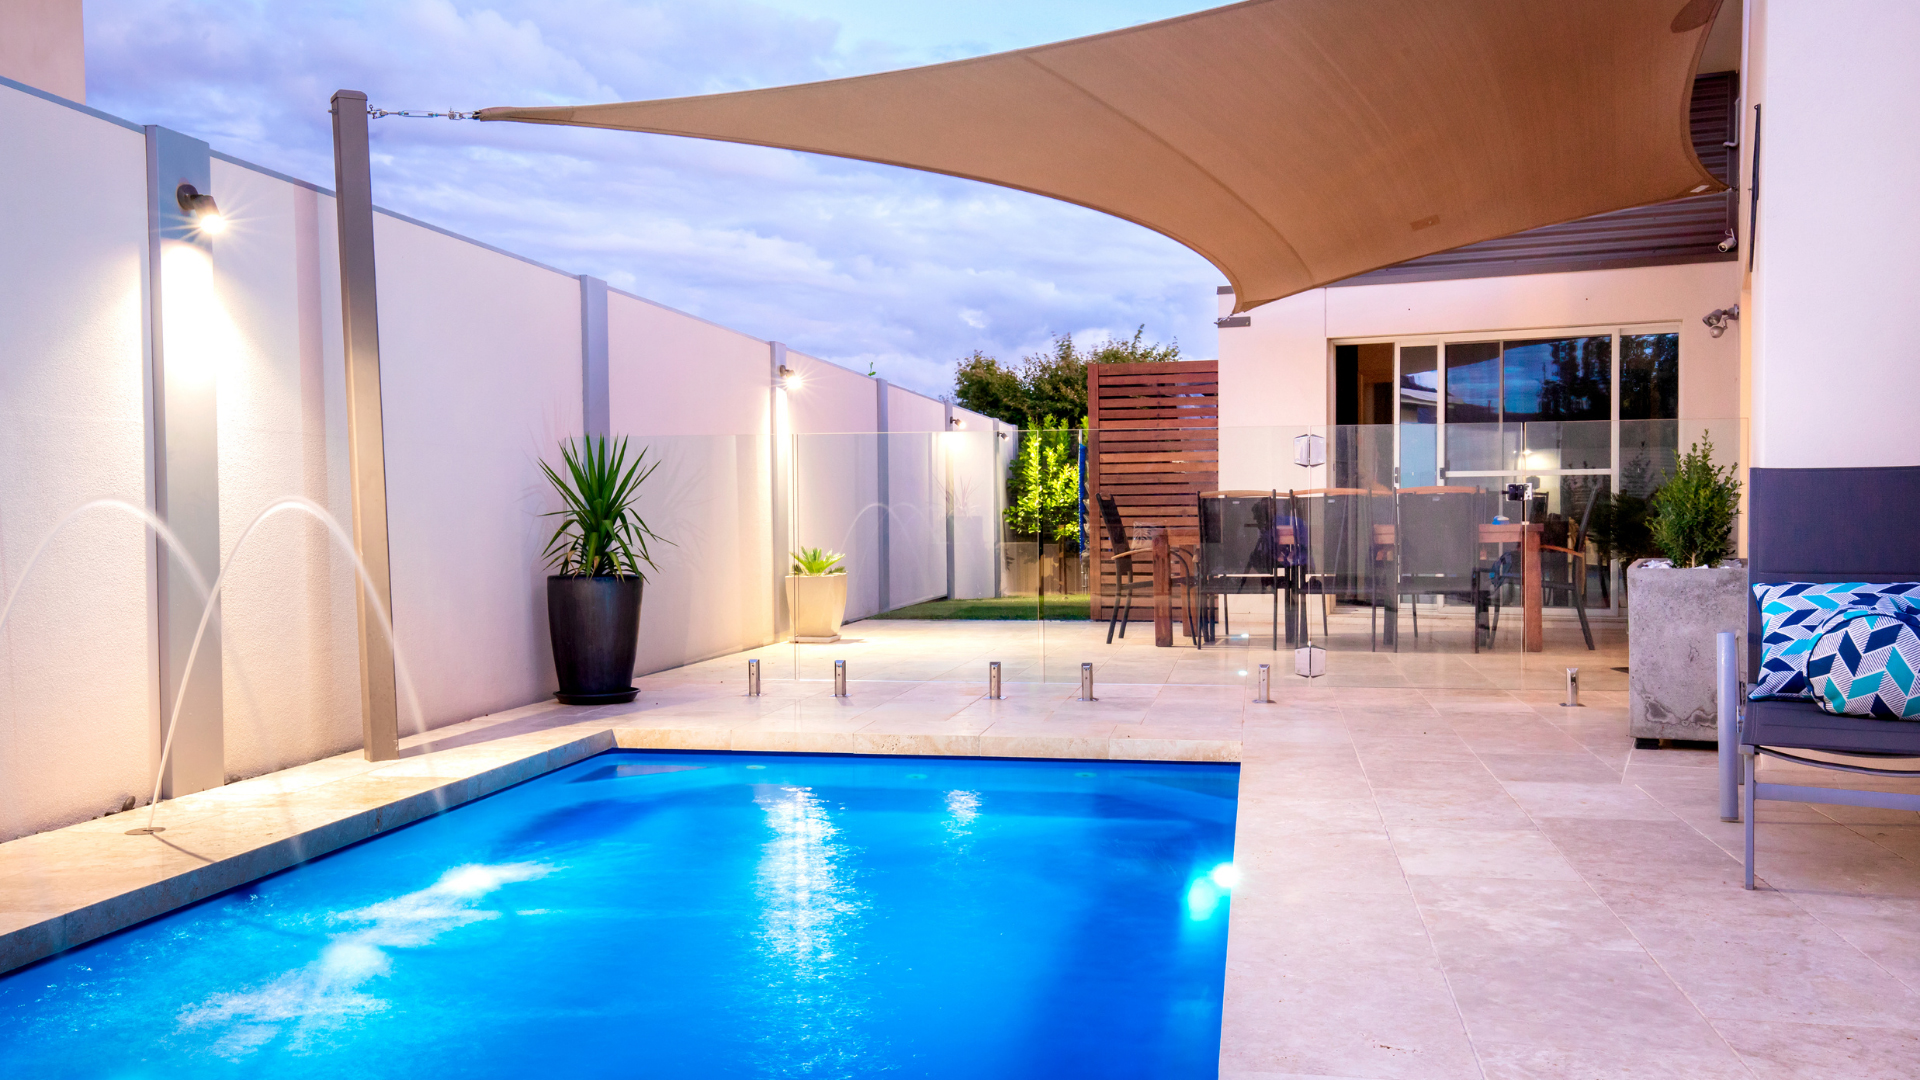 WWP Blog Pool Leak - When Suspecting A Pool Leak, Use These Tips To Confirm A Leak